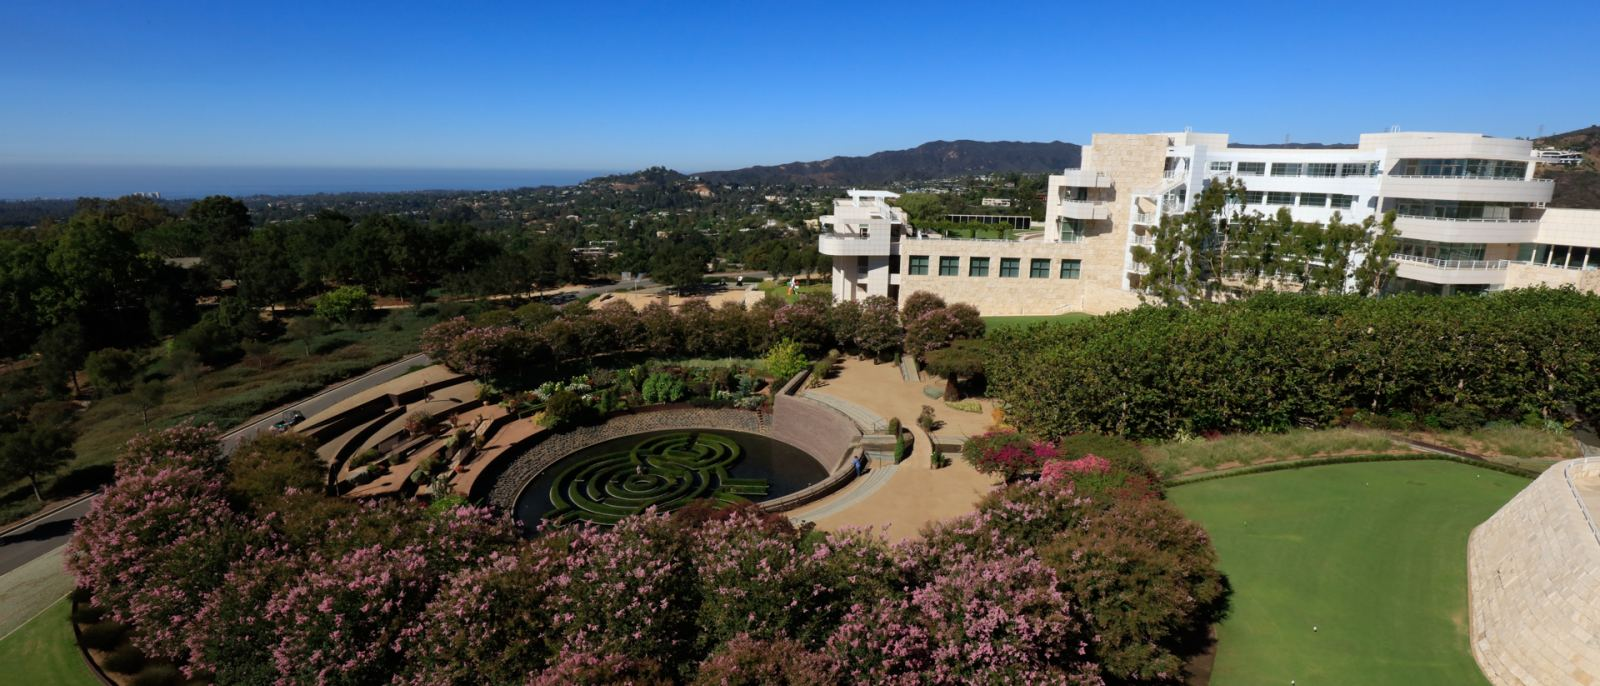 Views of the Central Garden and Pacific Ocean at the Getty Center   |  Photo: Yuri Hasegawa